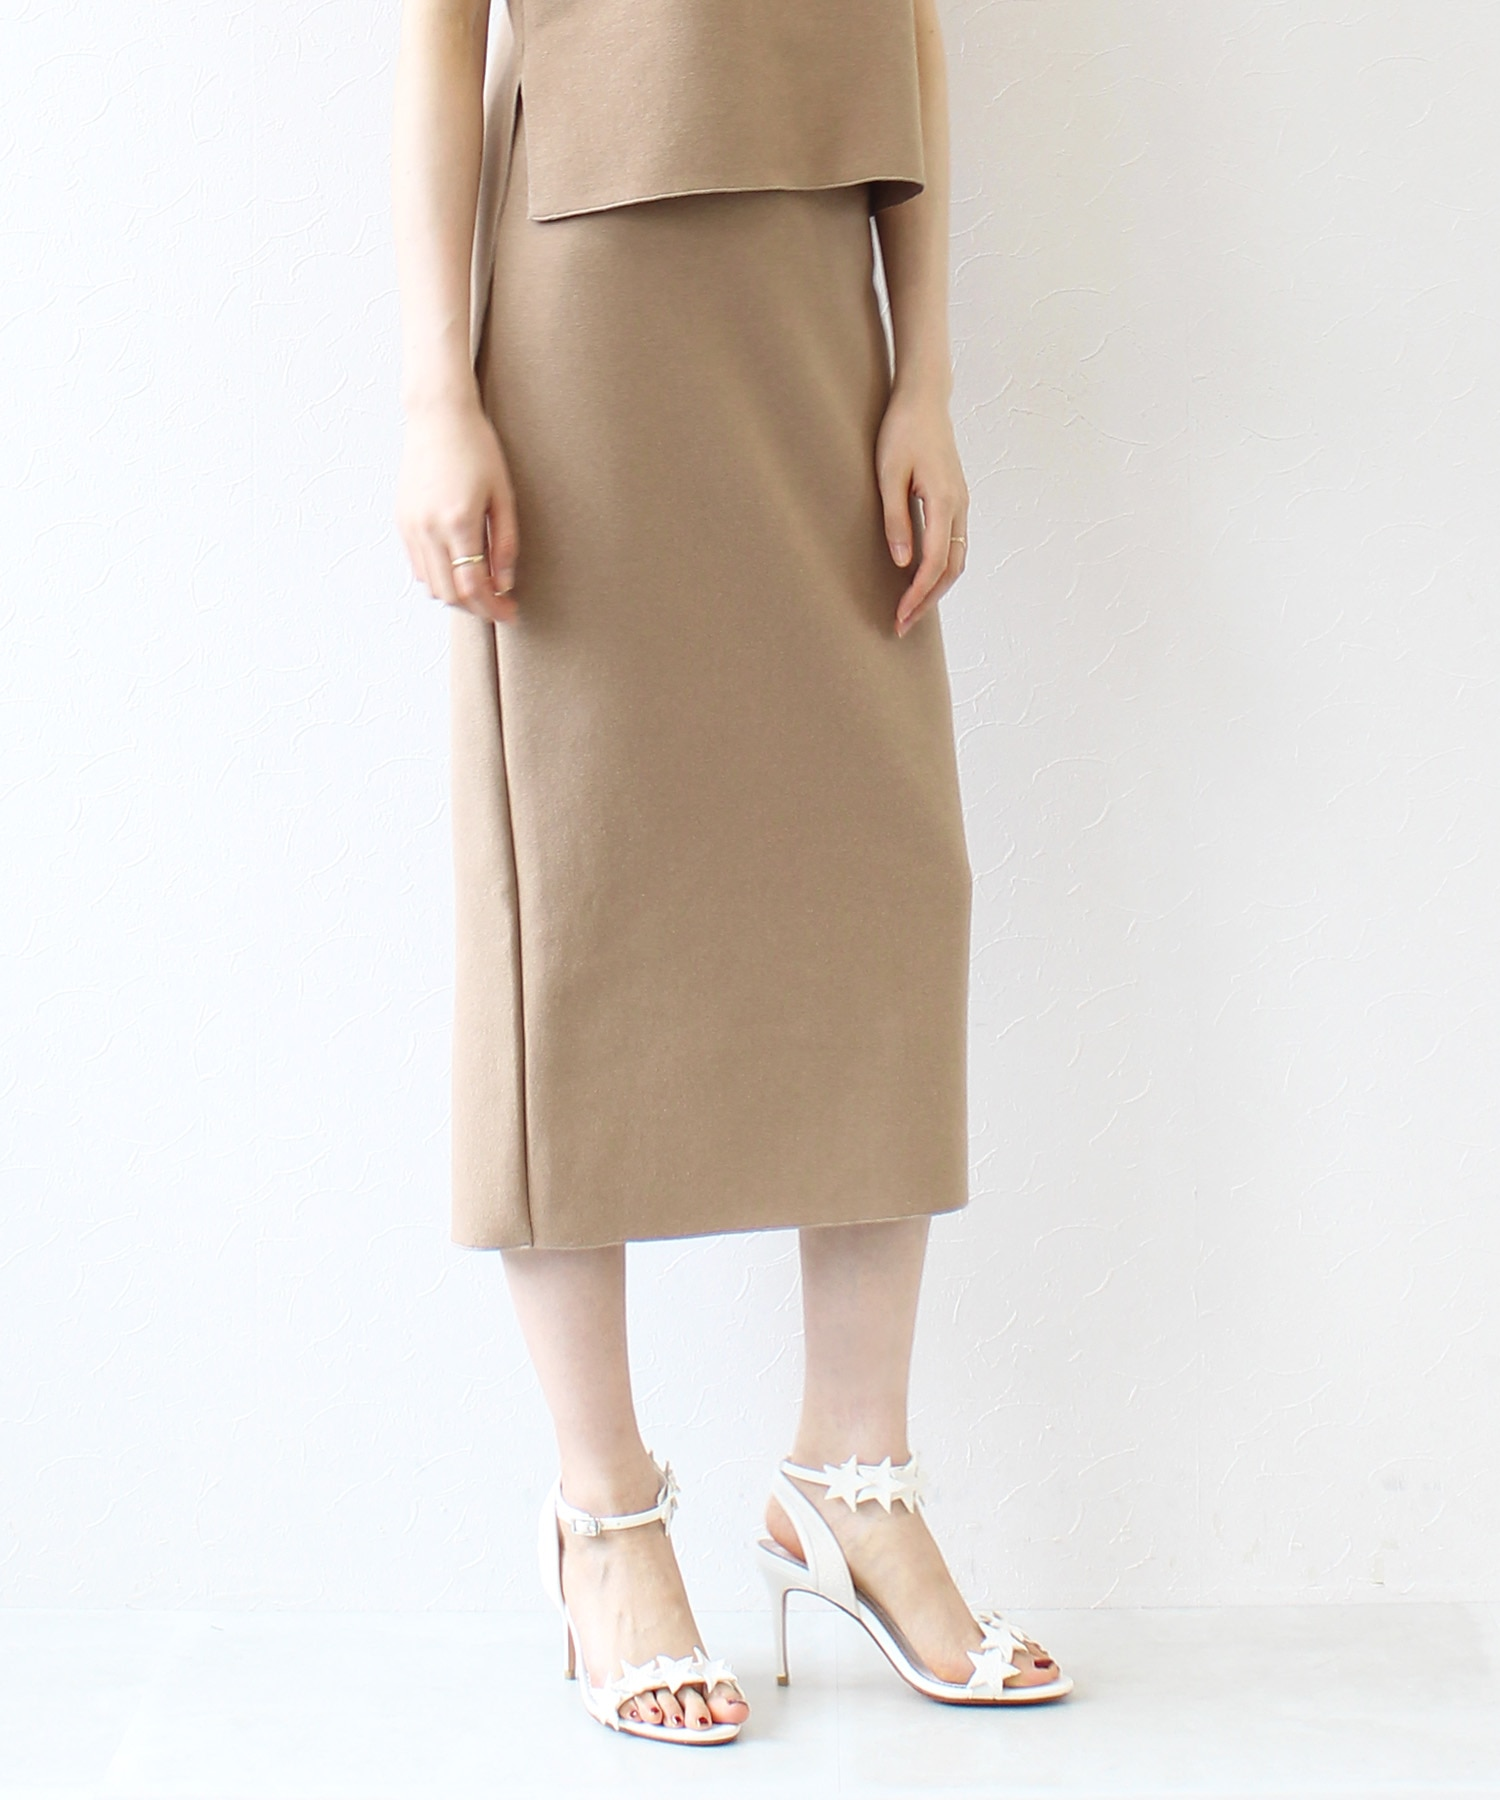 earo cupsule tight skirt